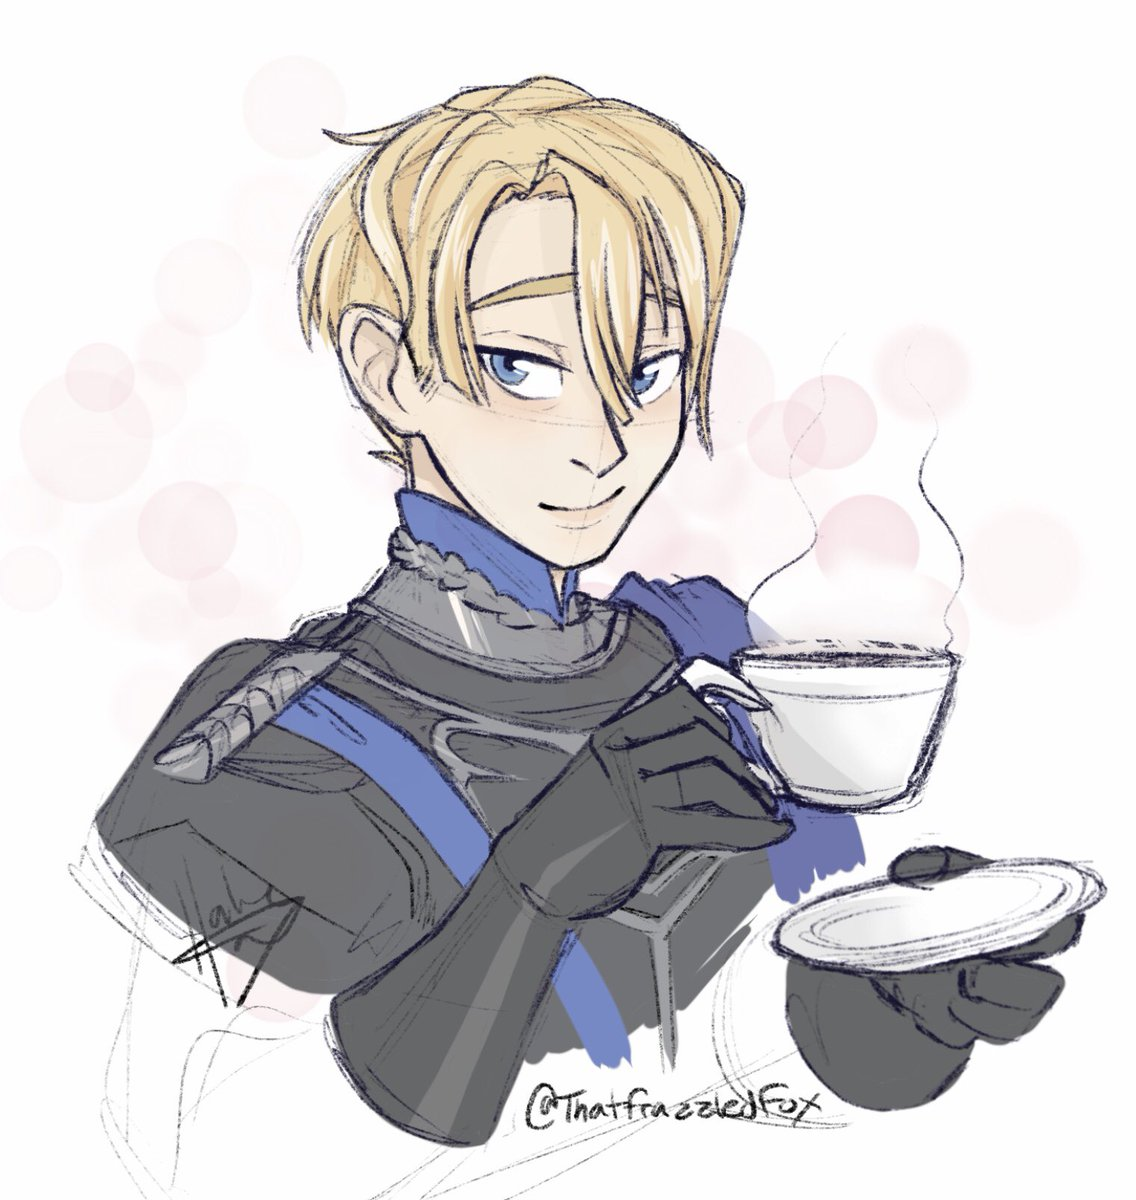 Our fearless leader of the blue lions! Enjoying this game so much, I just want to protect all these good kiddos!! Little sketch gift for a friend #FireEmblemThreeHouses<br>http://pic.twitter.com/6ZjzsX1MuY